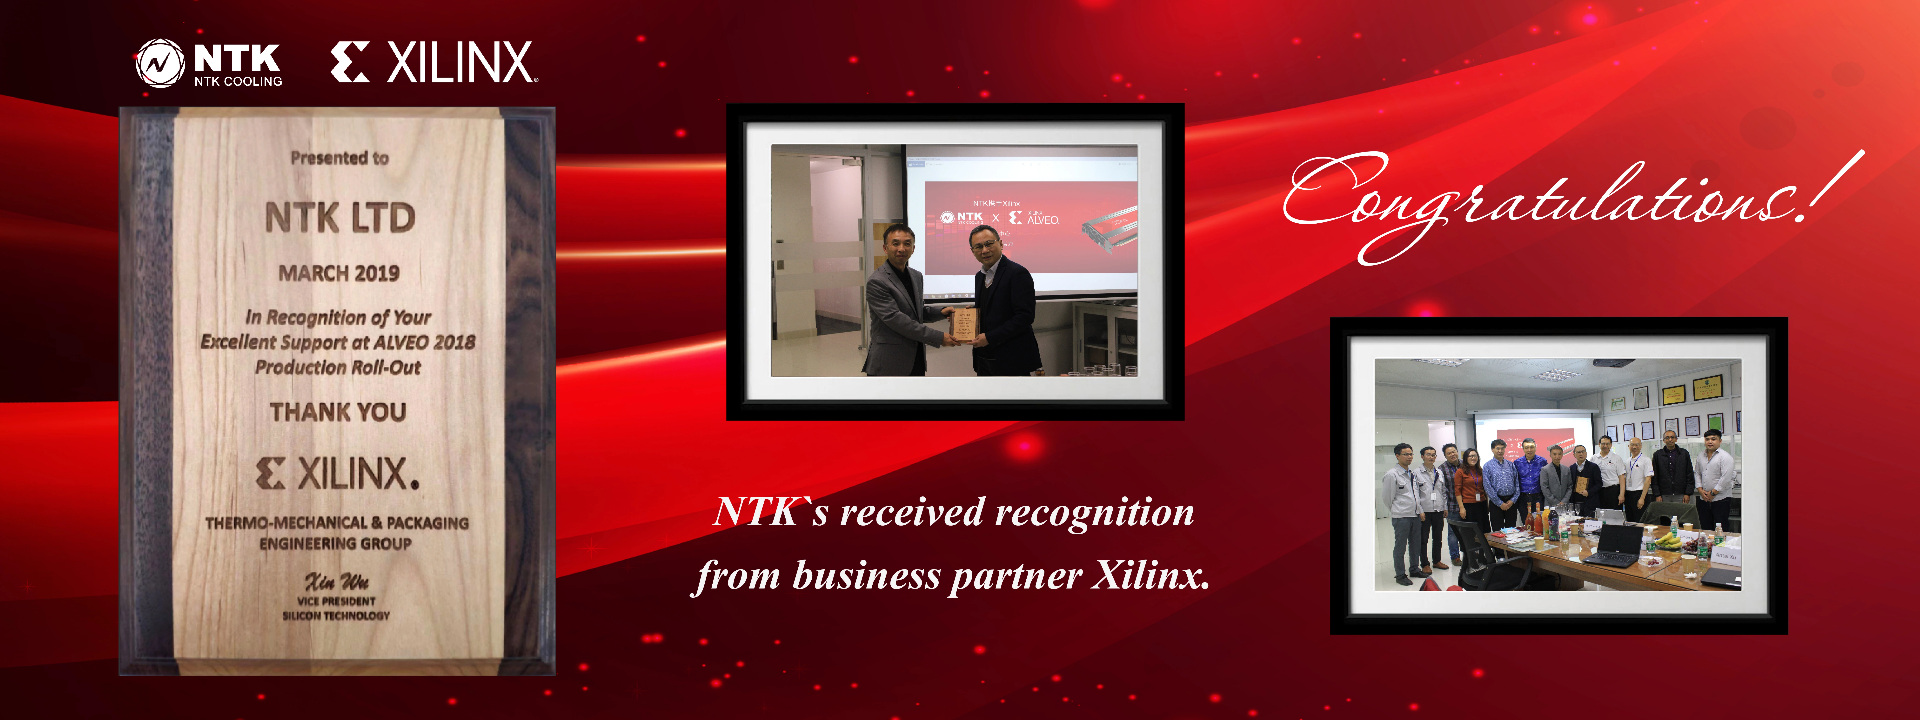 Xilinx recognition